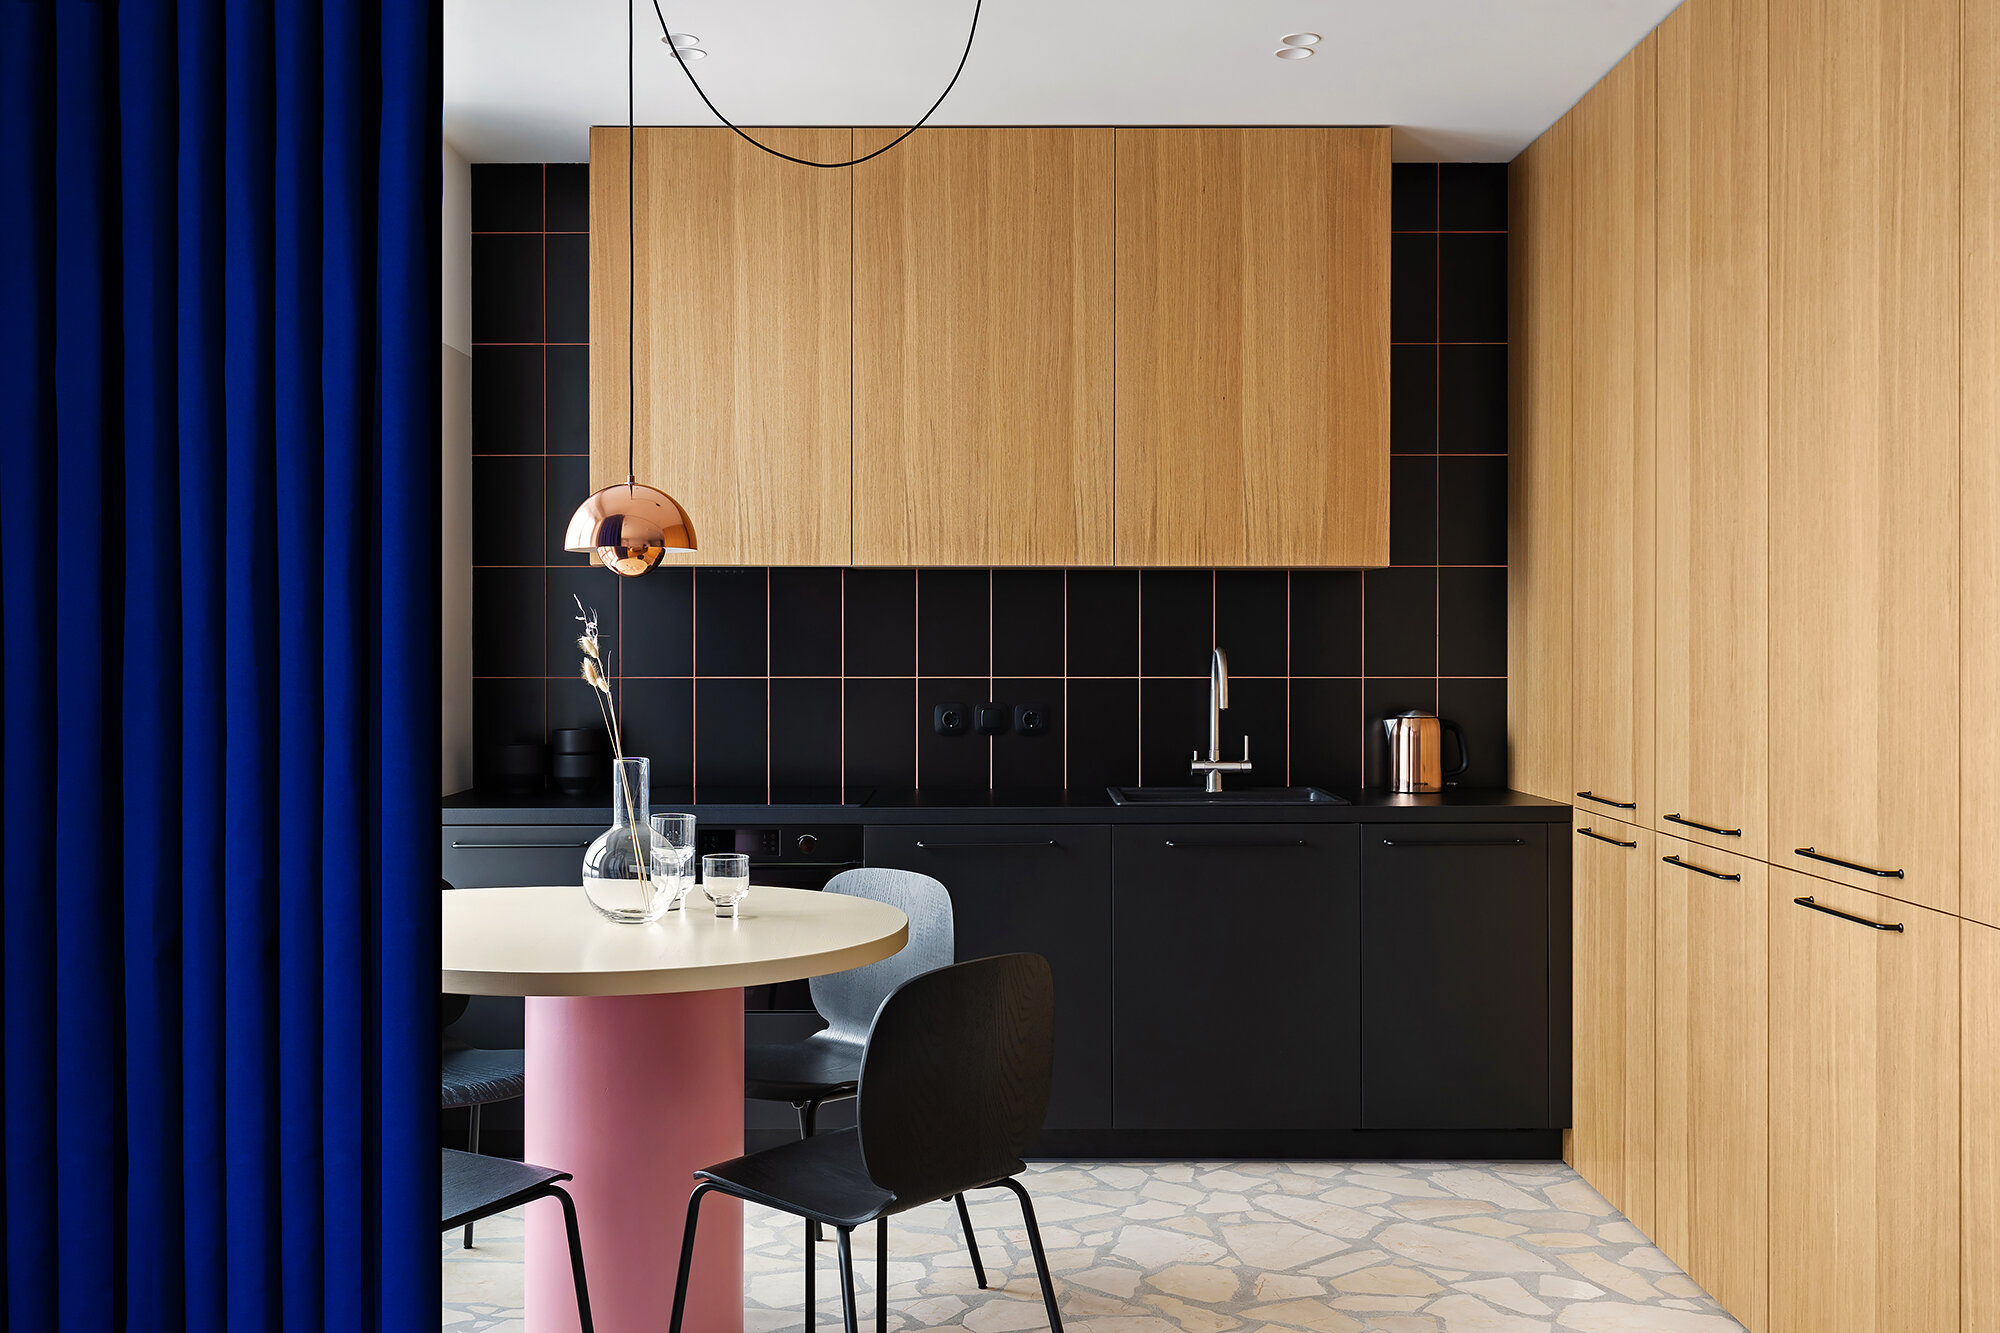 1_ater.architects_EGR Apartment_Inspirationist